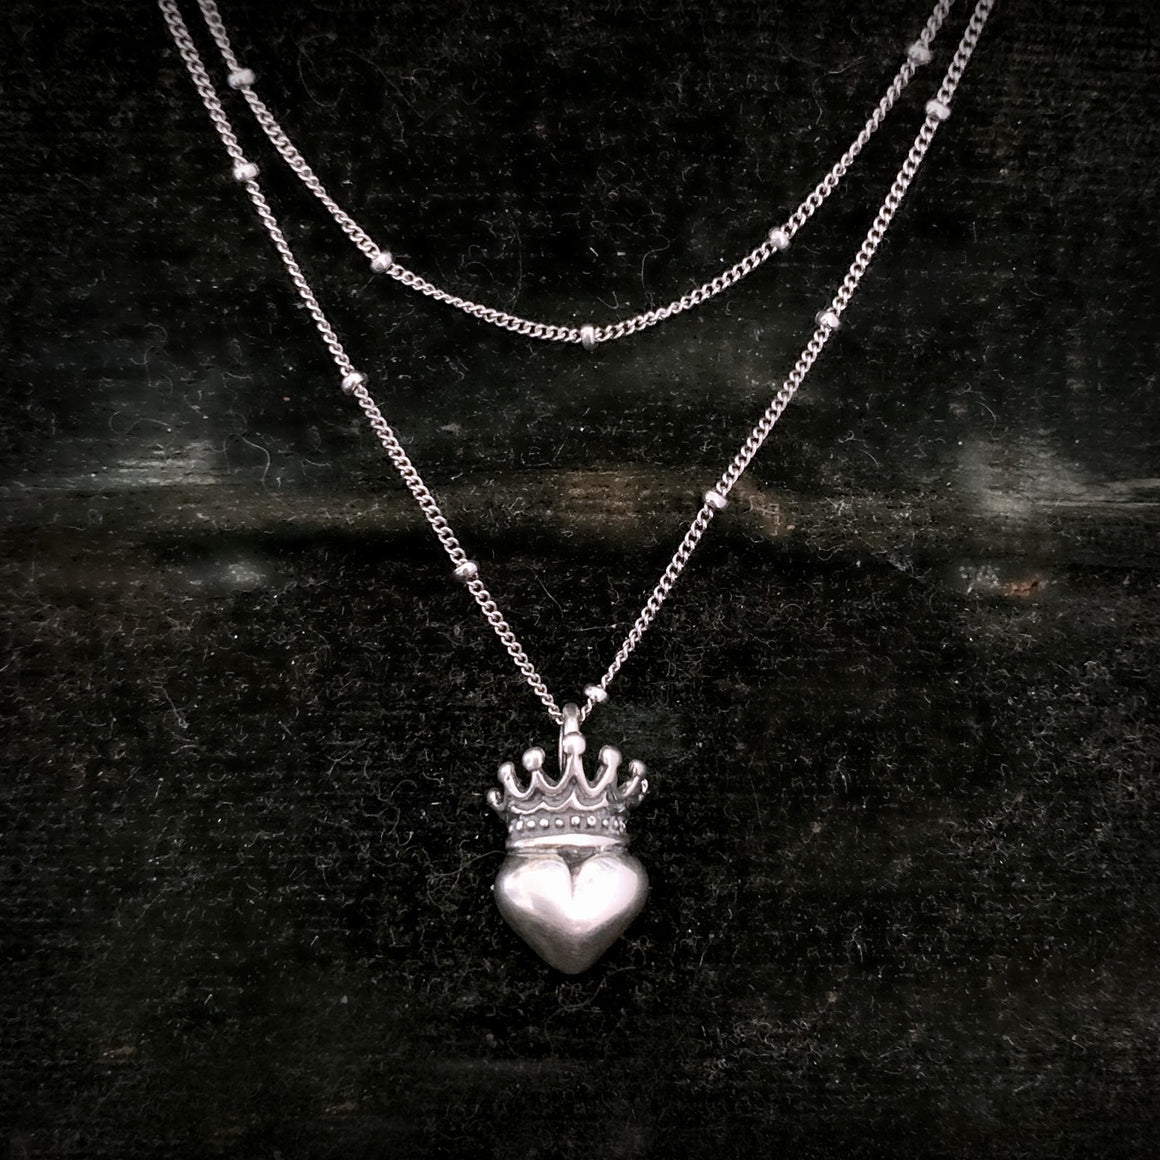 Solid Sterling Silver Heart Crown Pendant Chain Necklace